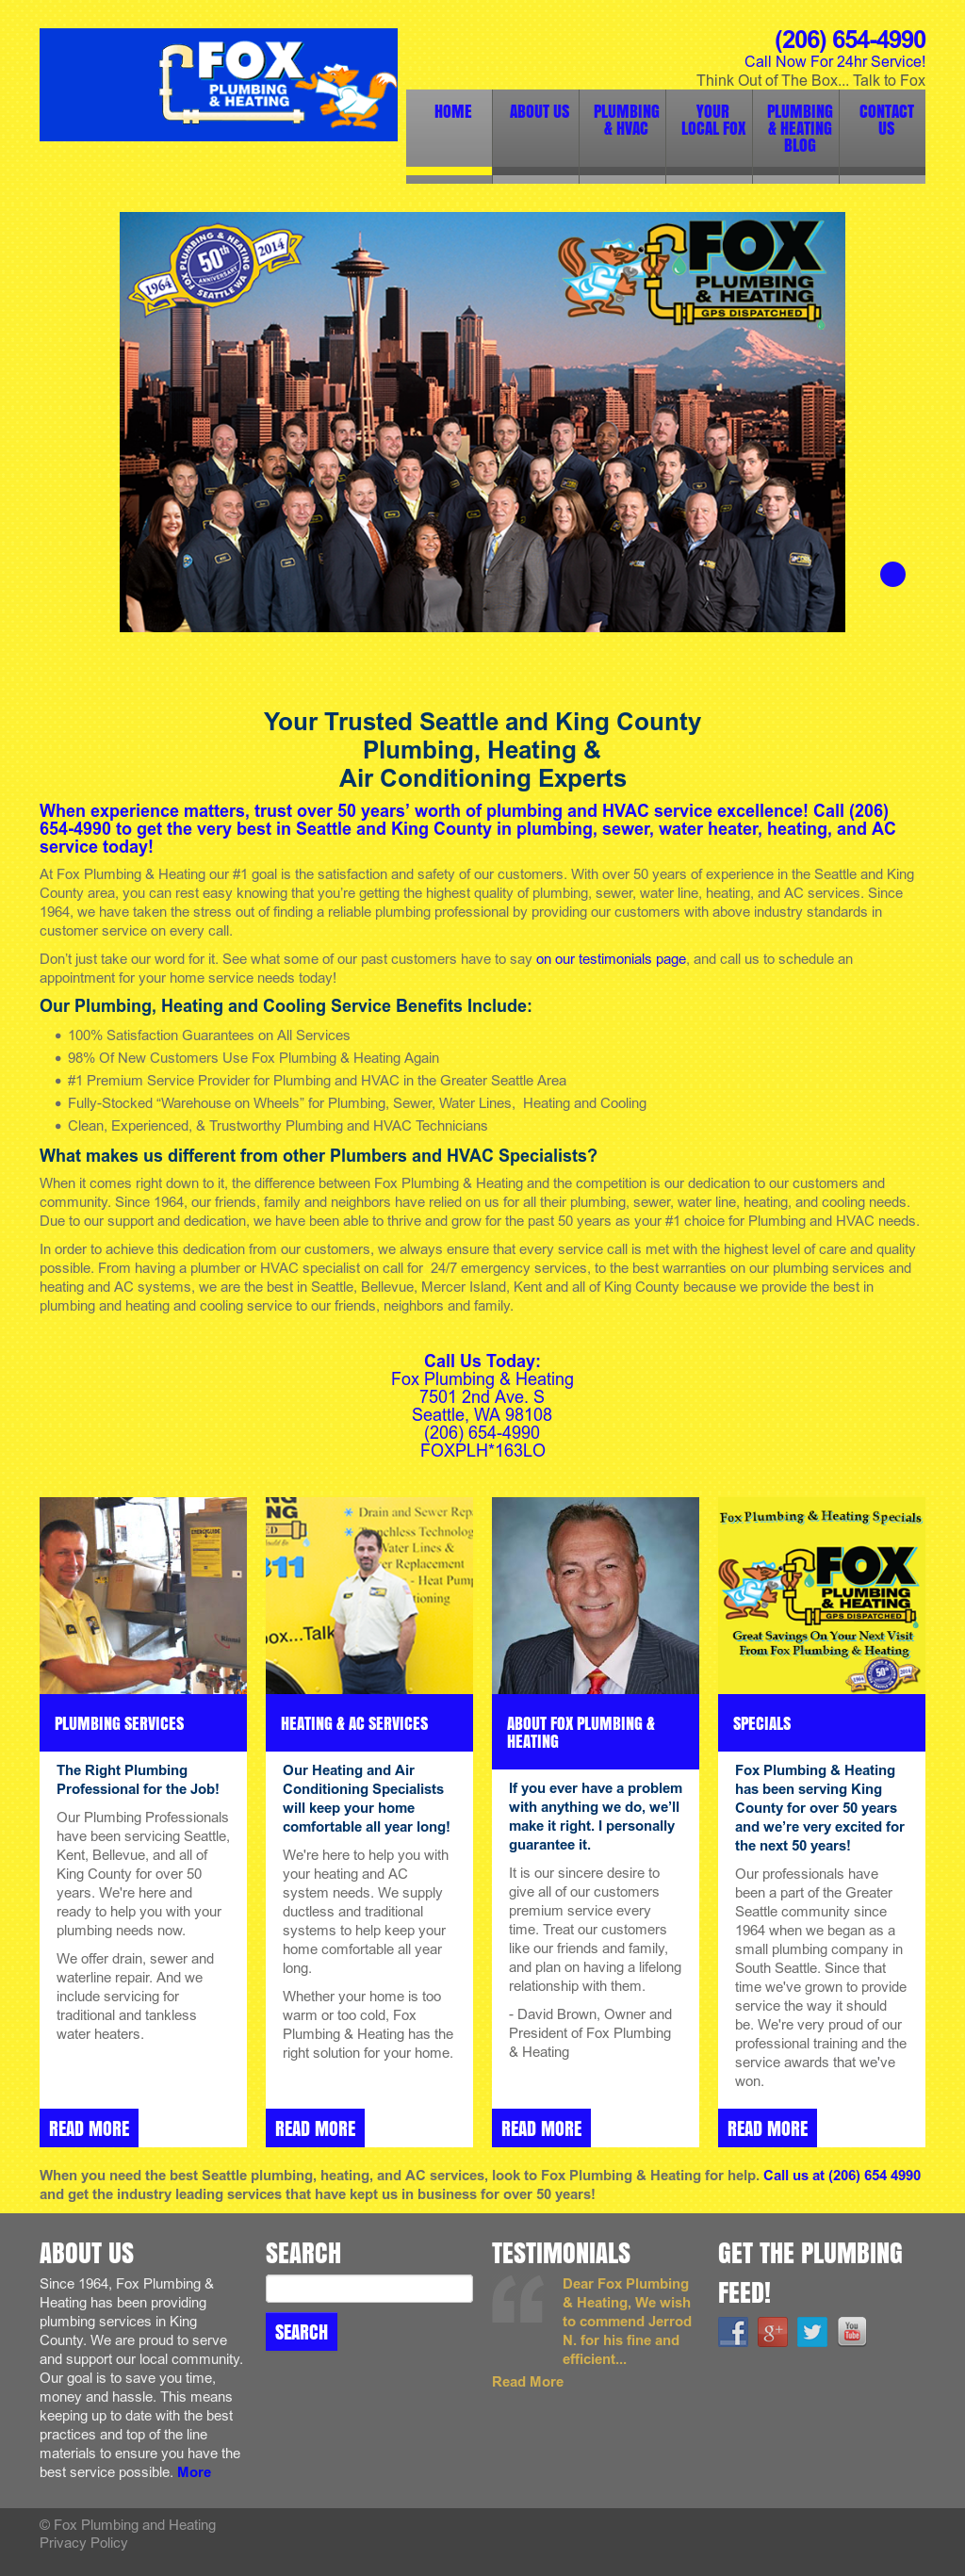 Fox Plumbing & Heating Competitors, Revenue and Employees